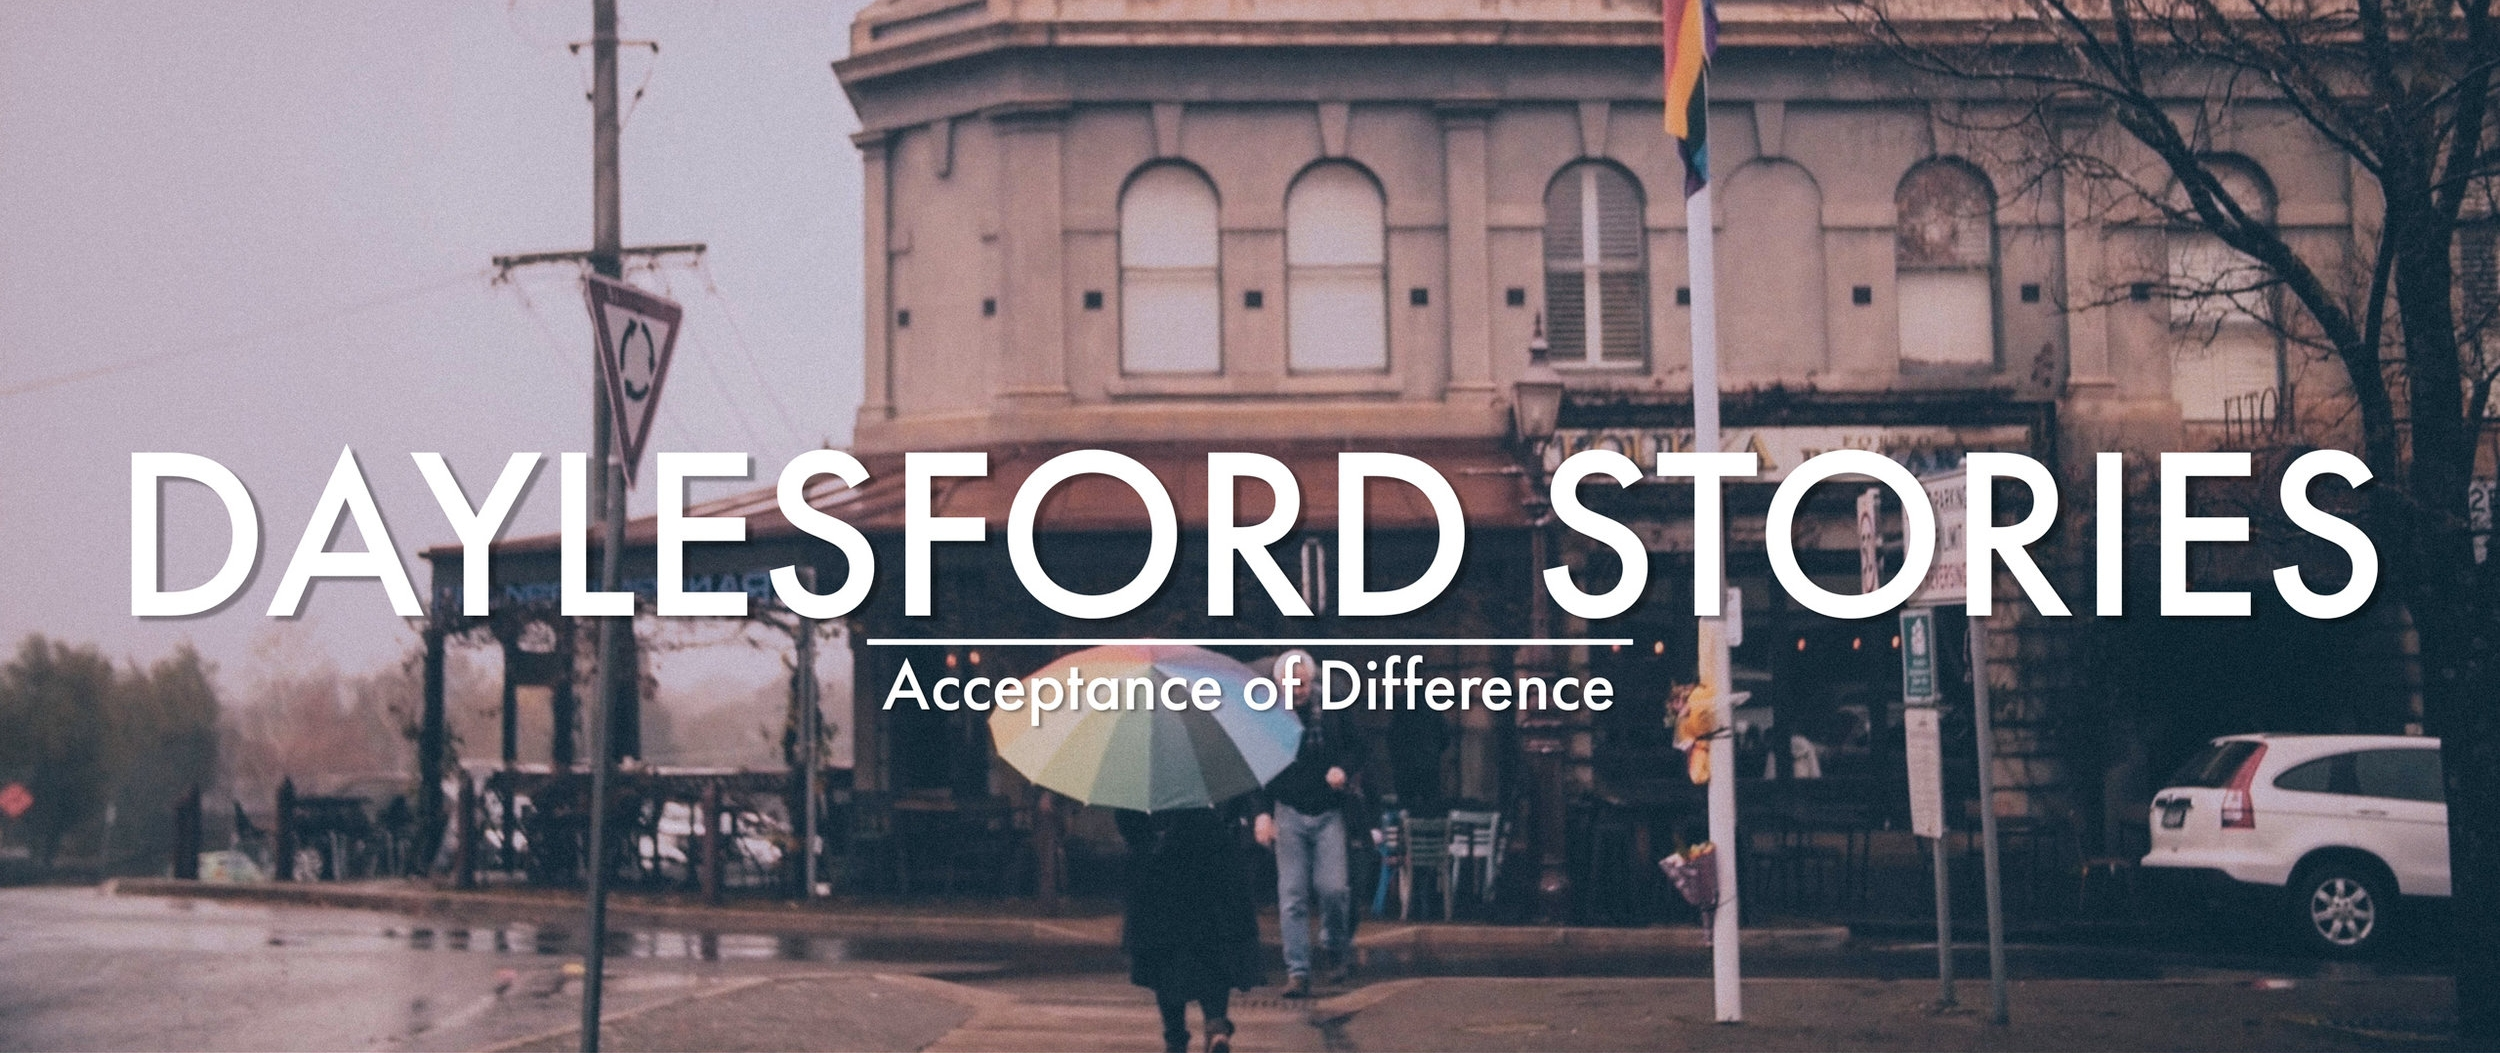 Daylesford-acceptance-of-difference.jpg